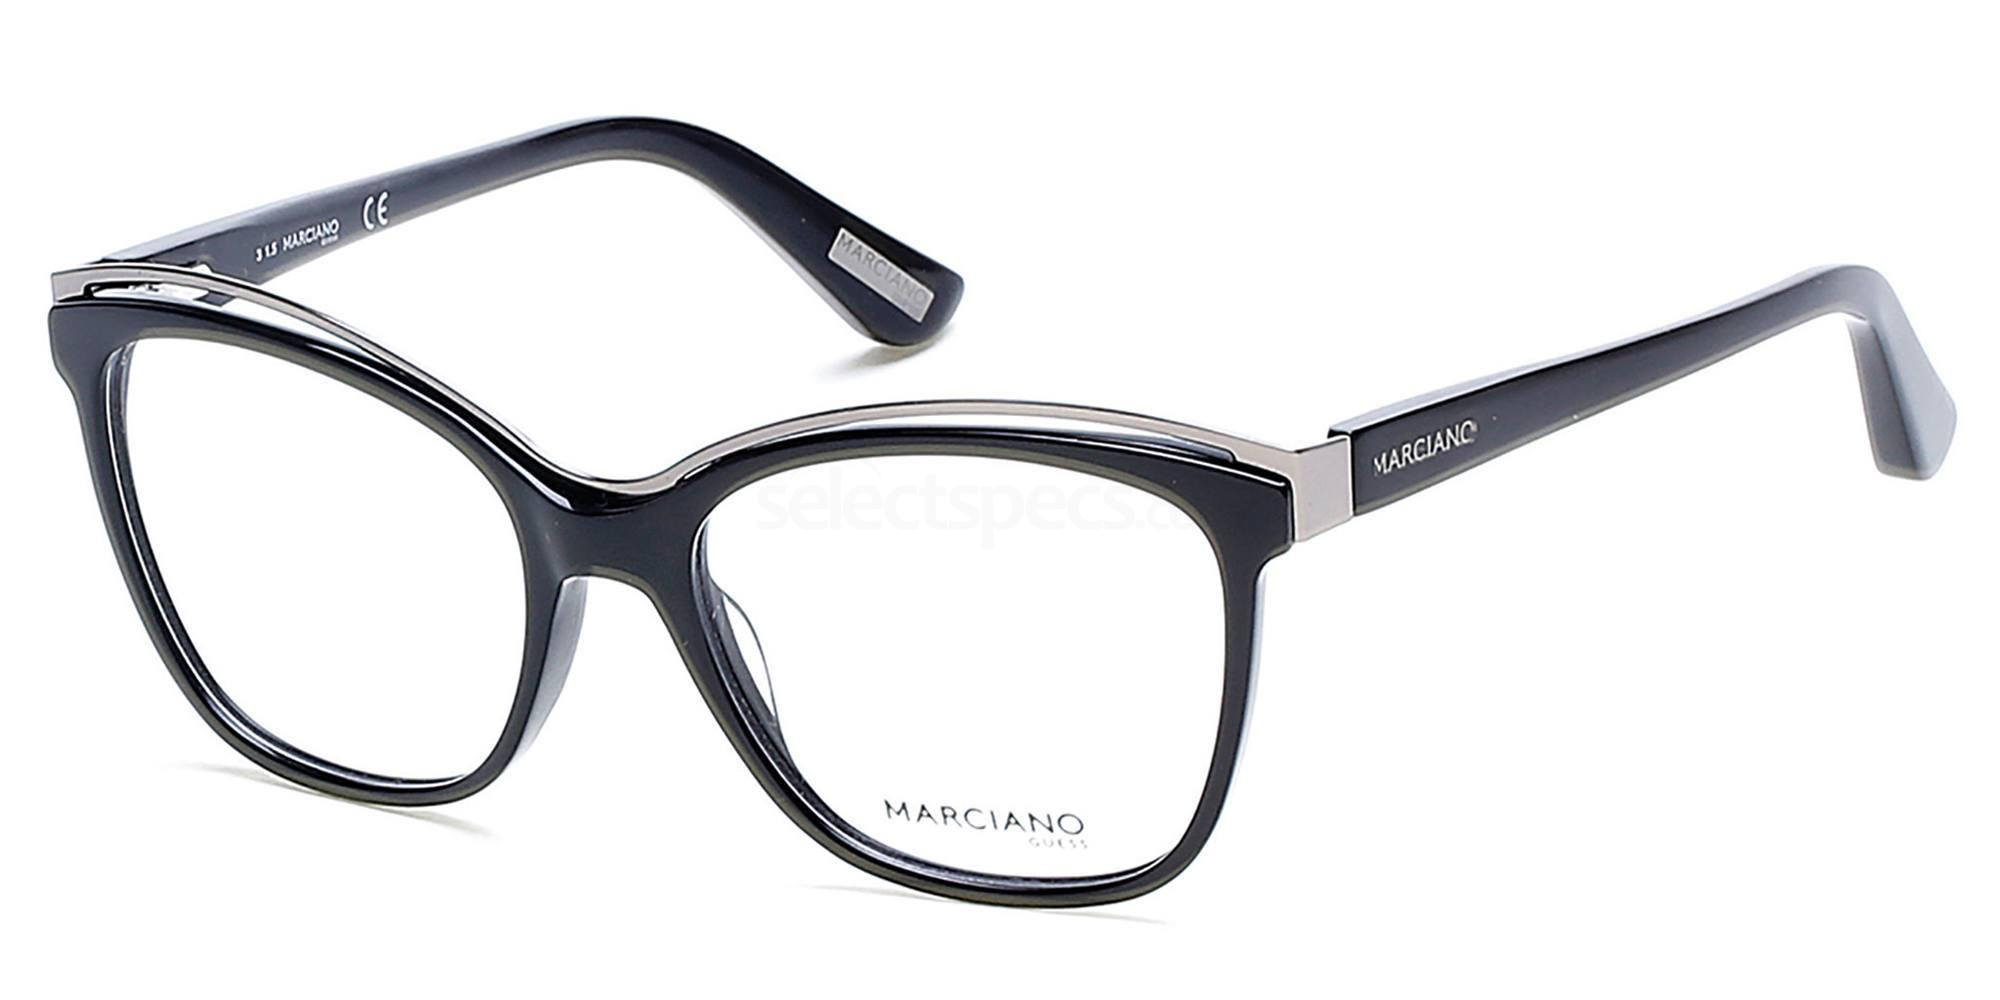 001 GM0276 Glasses, Guess by Marciano